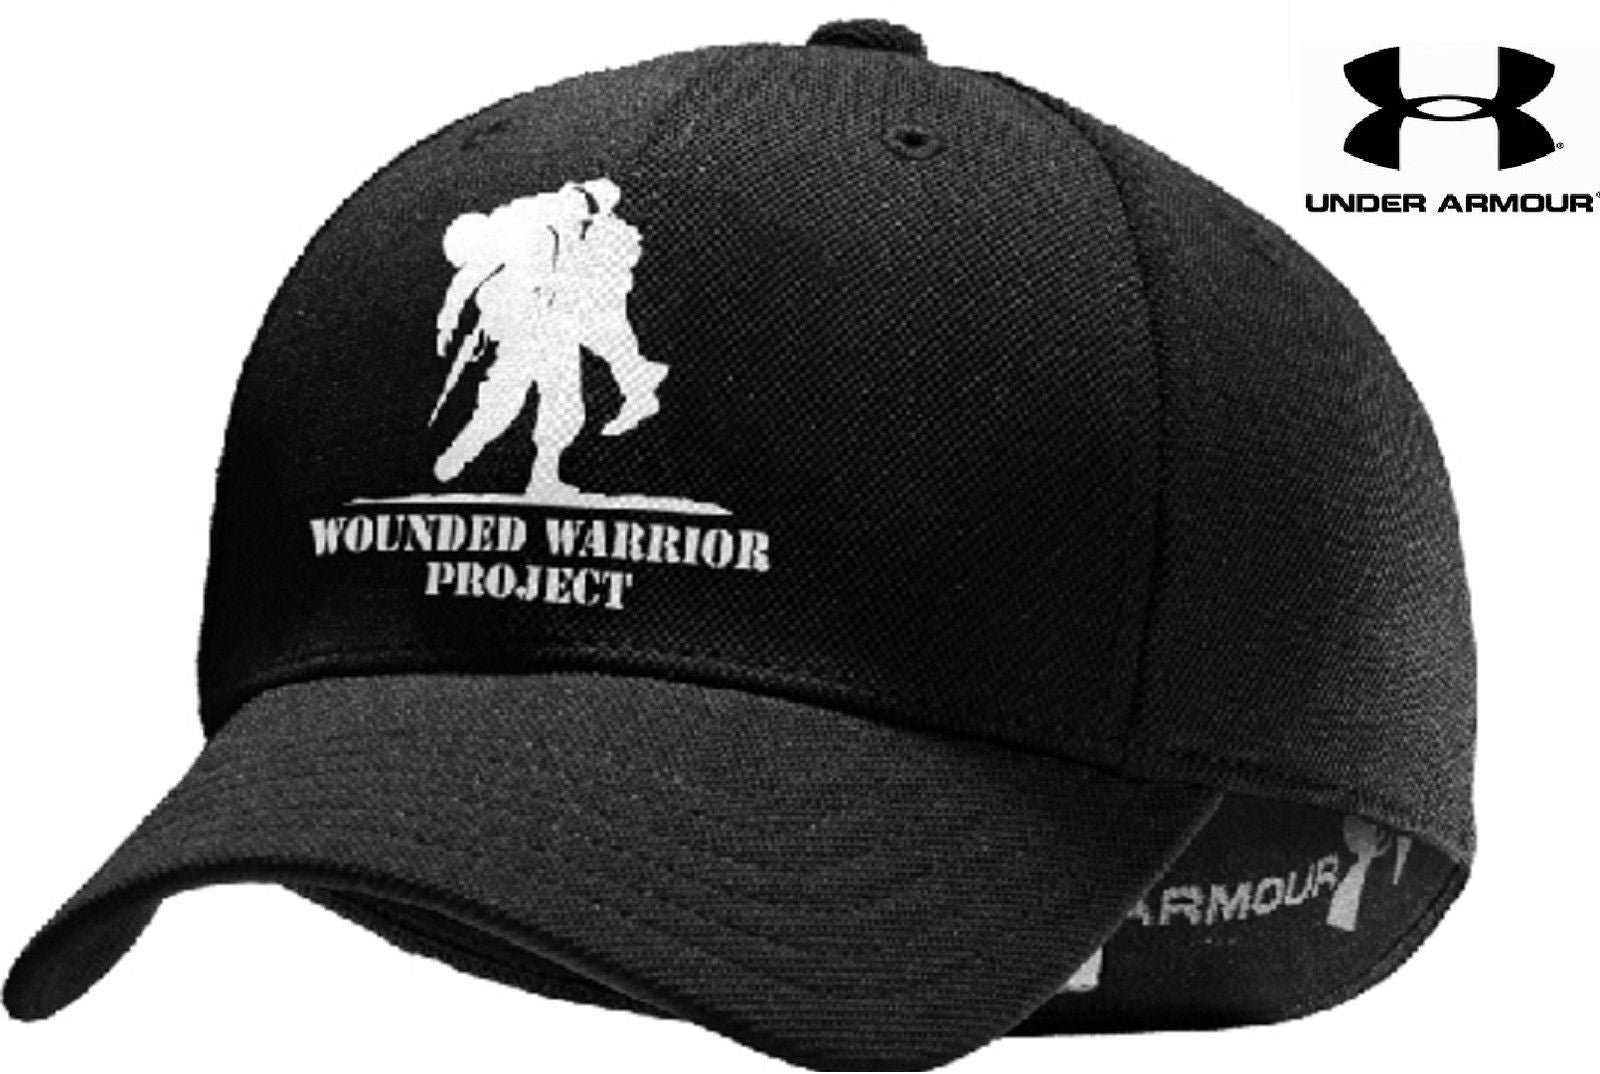 ddc80111fda Under Armour Wounded Warrior Stretch-Fit Cap - Black UA WWP Flex Fitted Hat